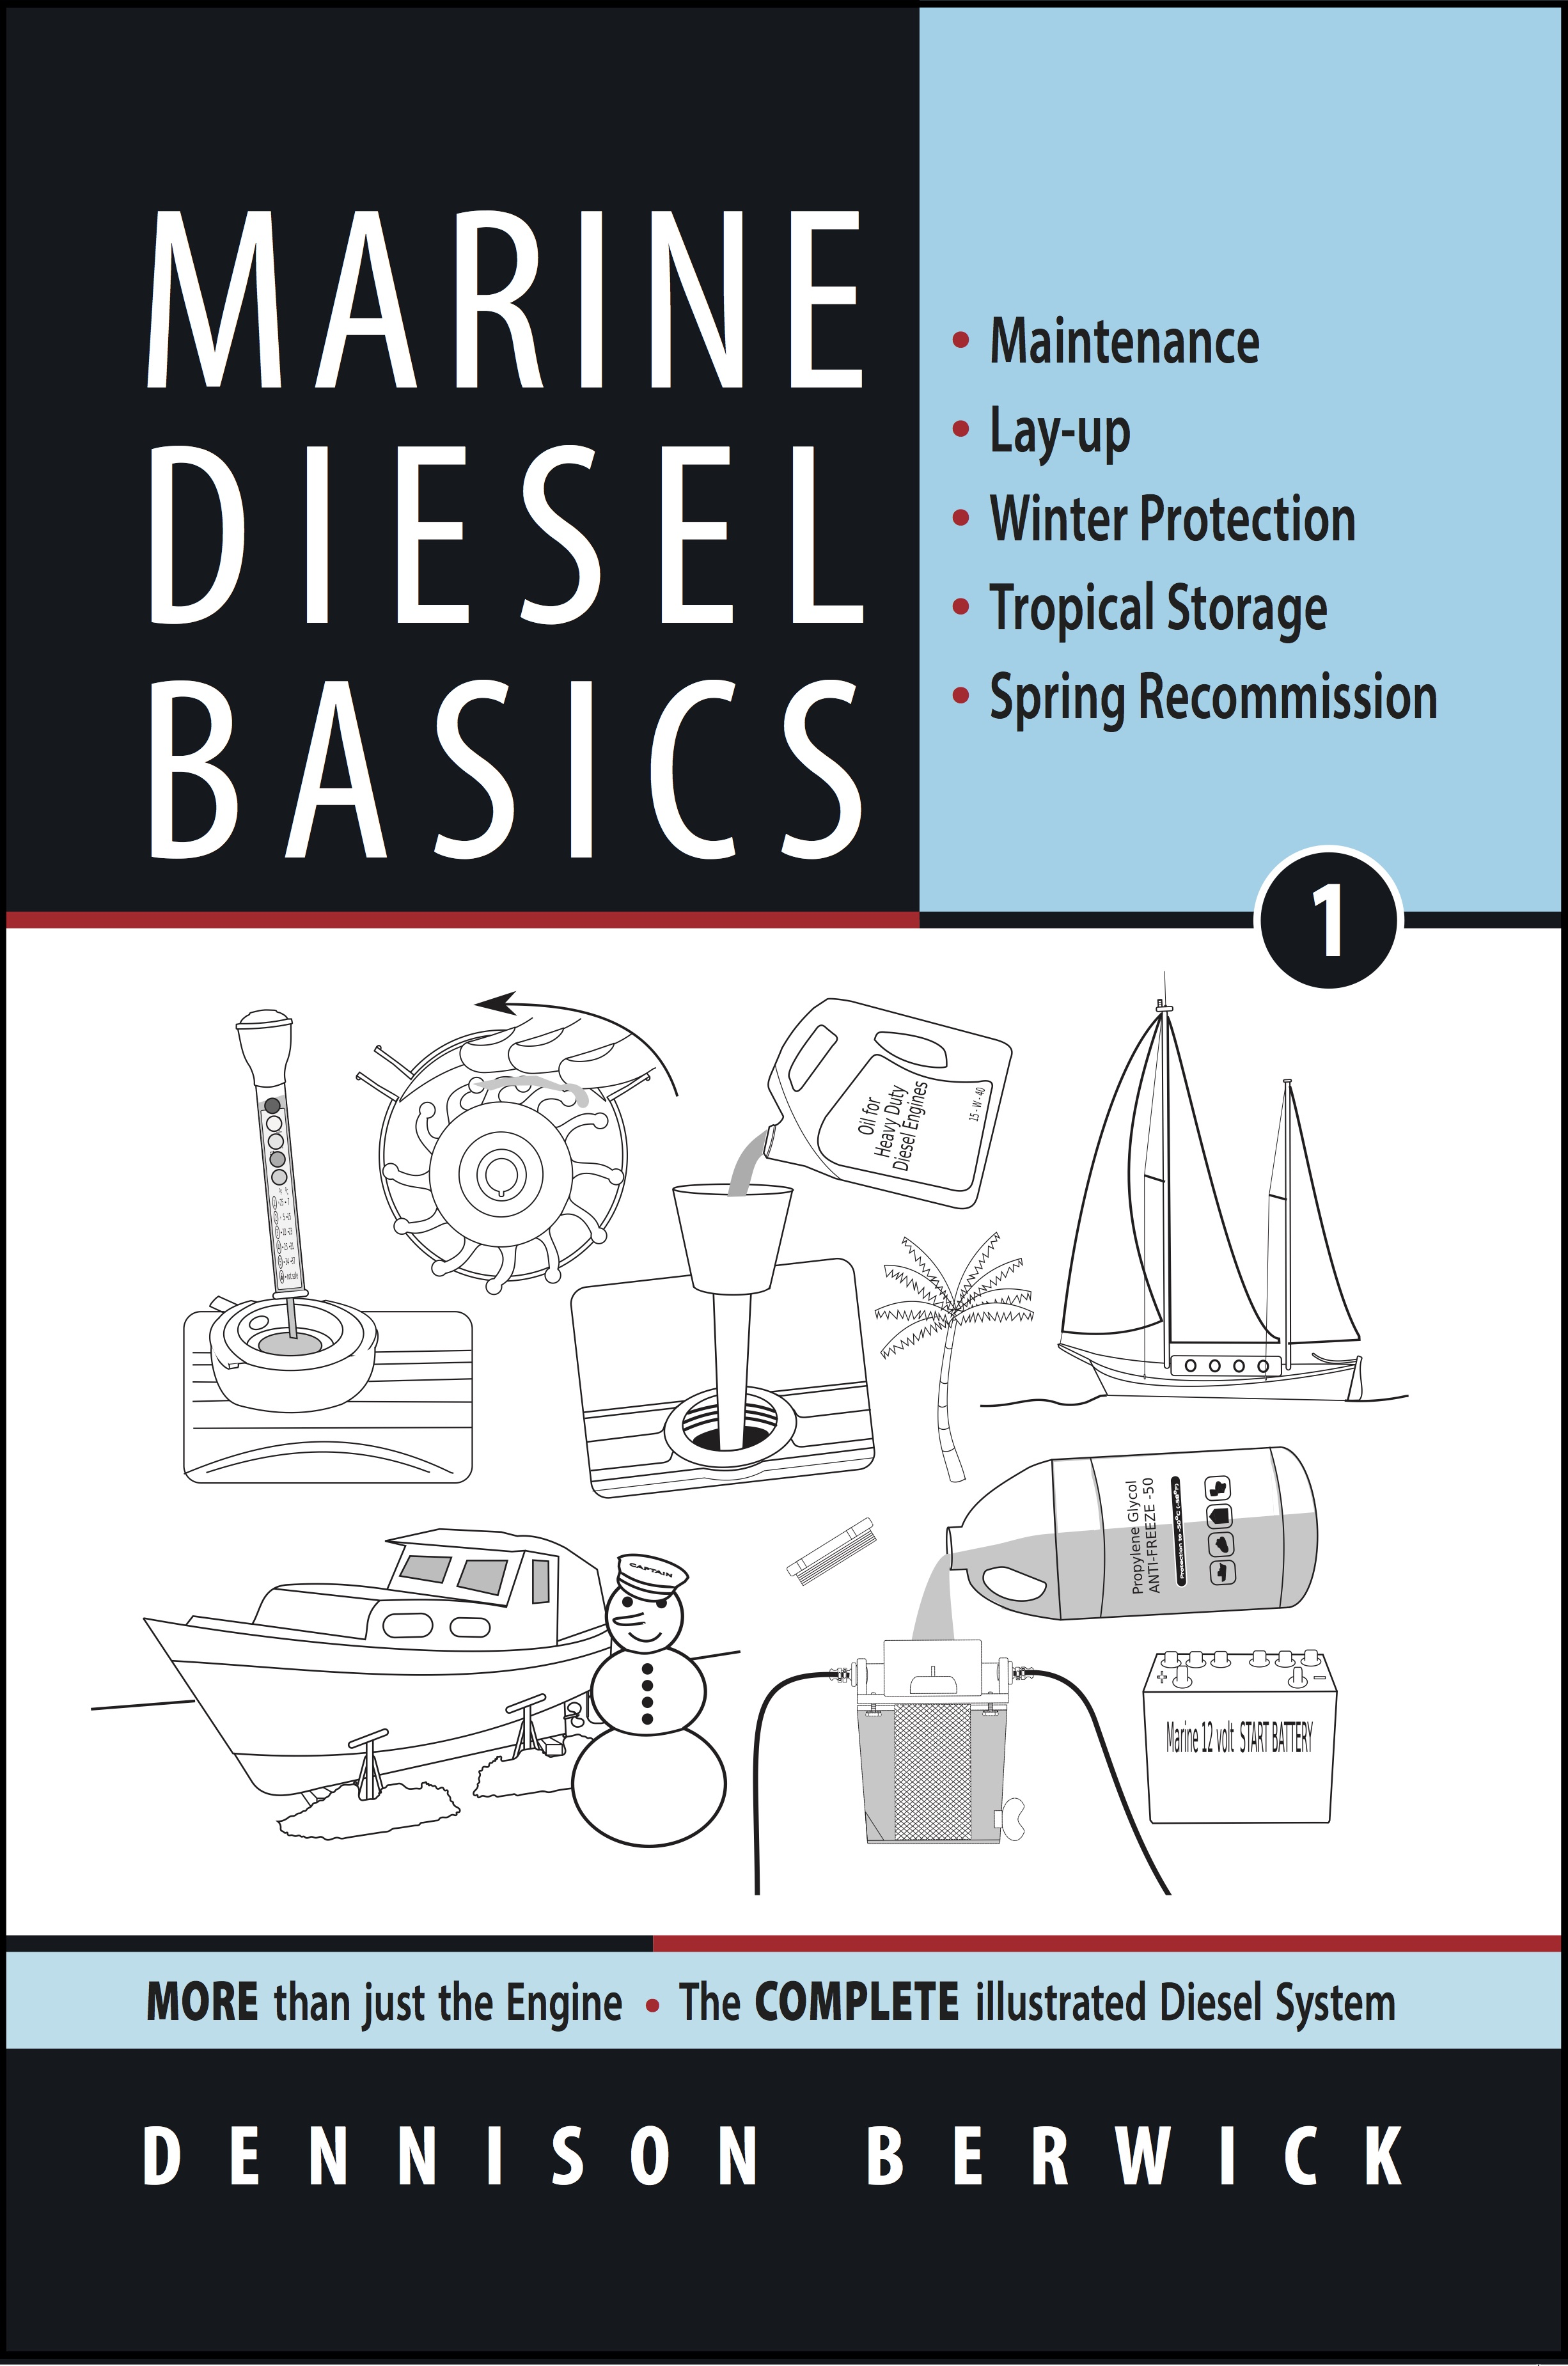 Cummins Diesel Engine Manuals Marine Basics Qsm11 Wiring Diagram Cover Of 1